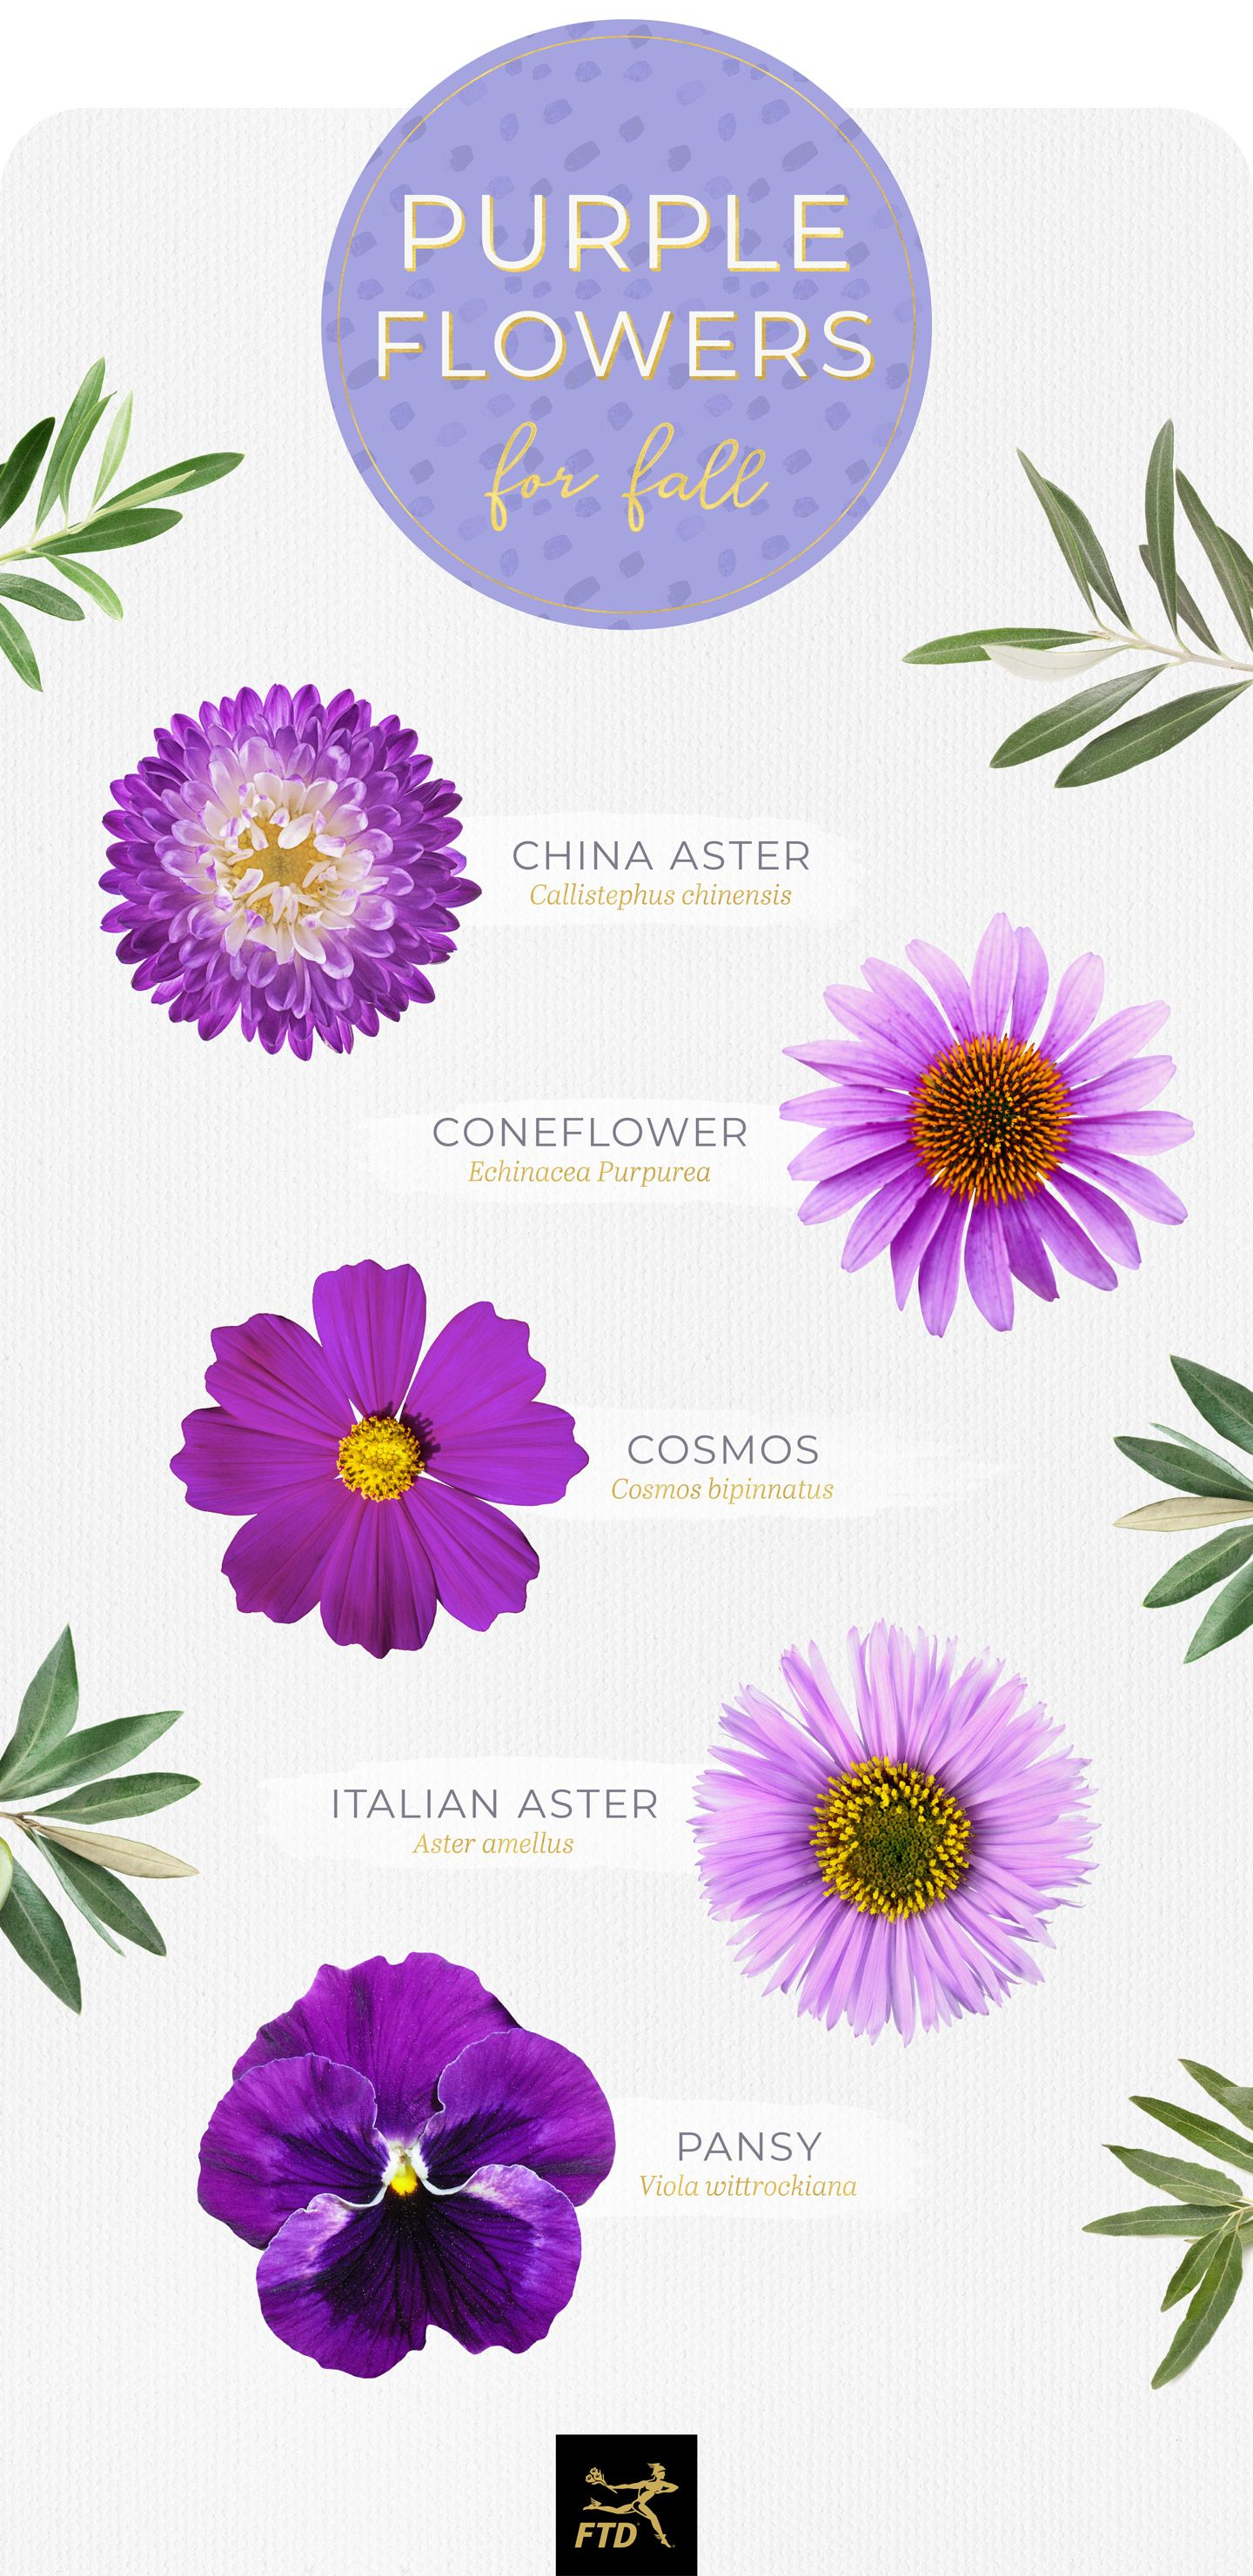 50 Types of Purple Flowers (With images) Types of purple